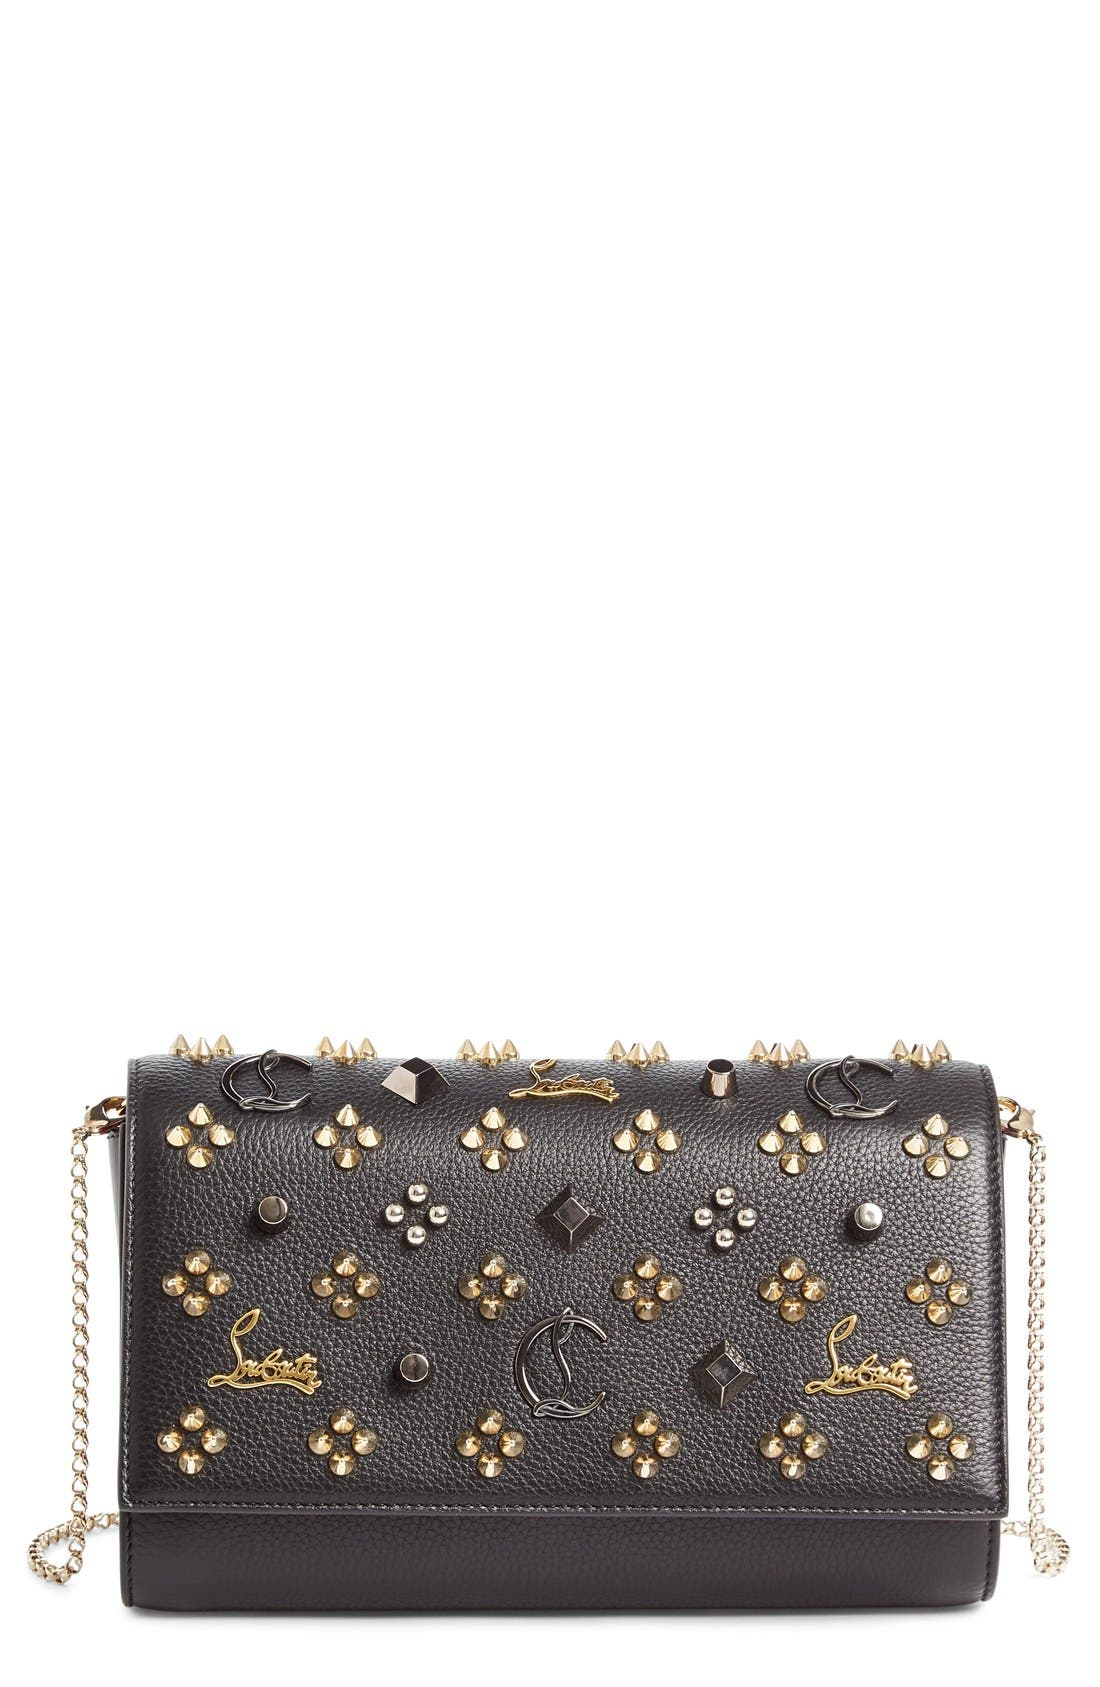 Alternate Image 1 Selected - Christian Louboutin Paloma Empire Calfskin Clutch